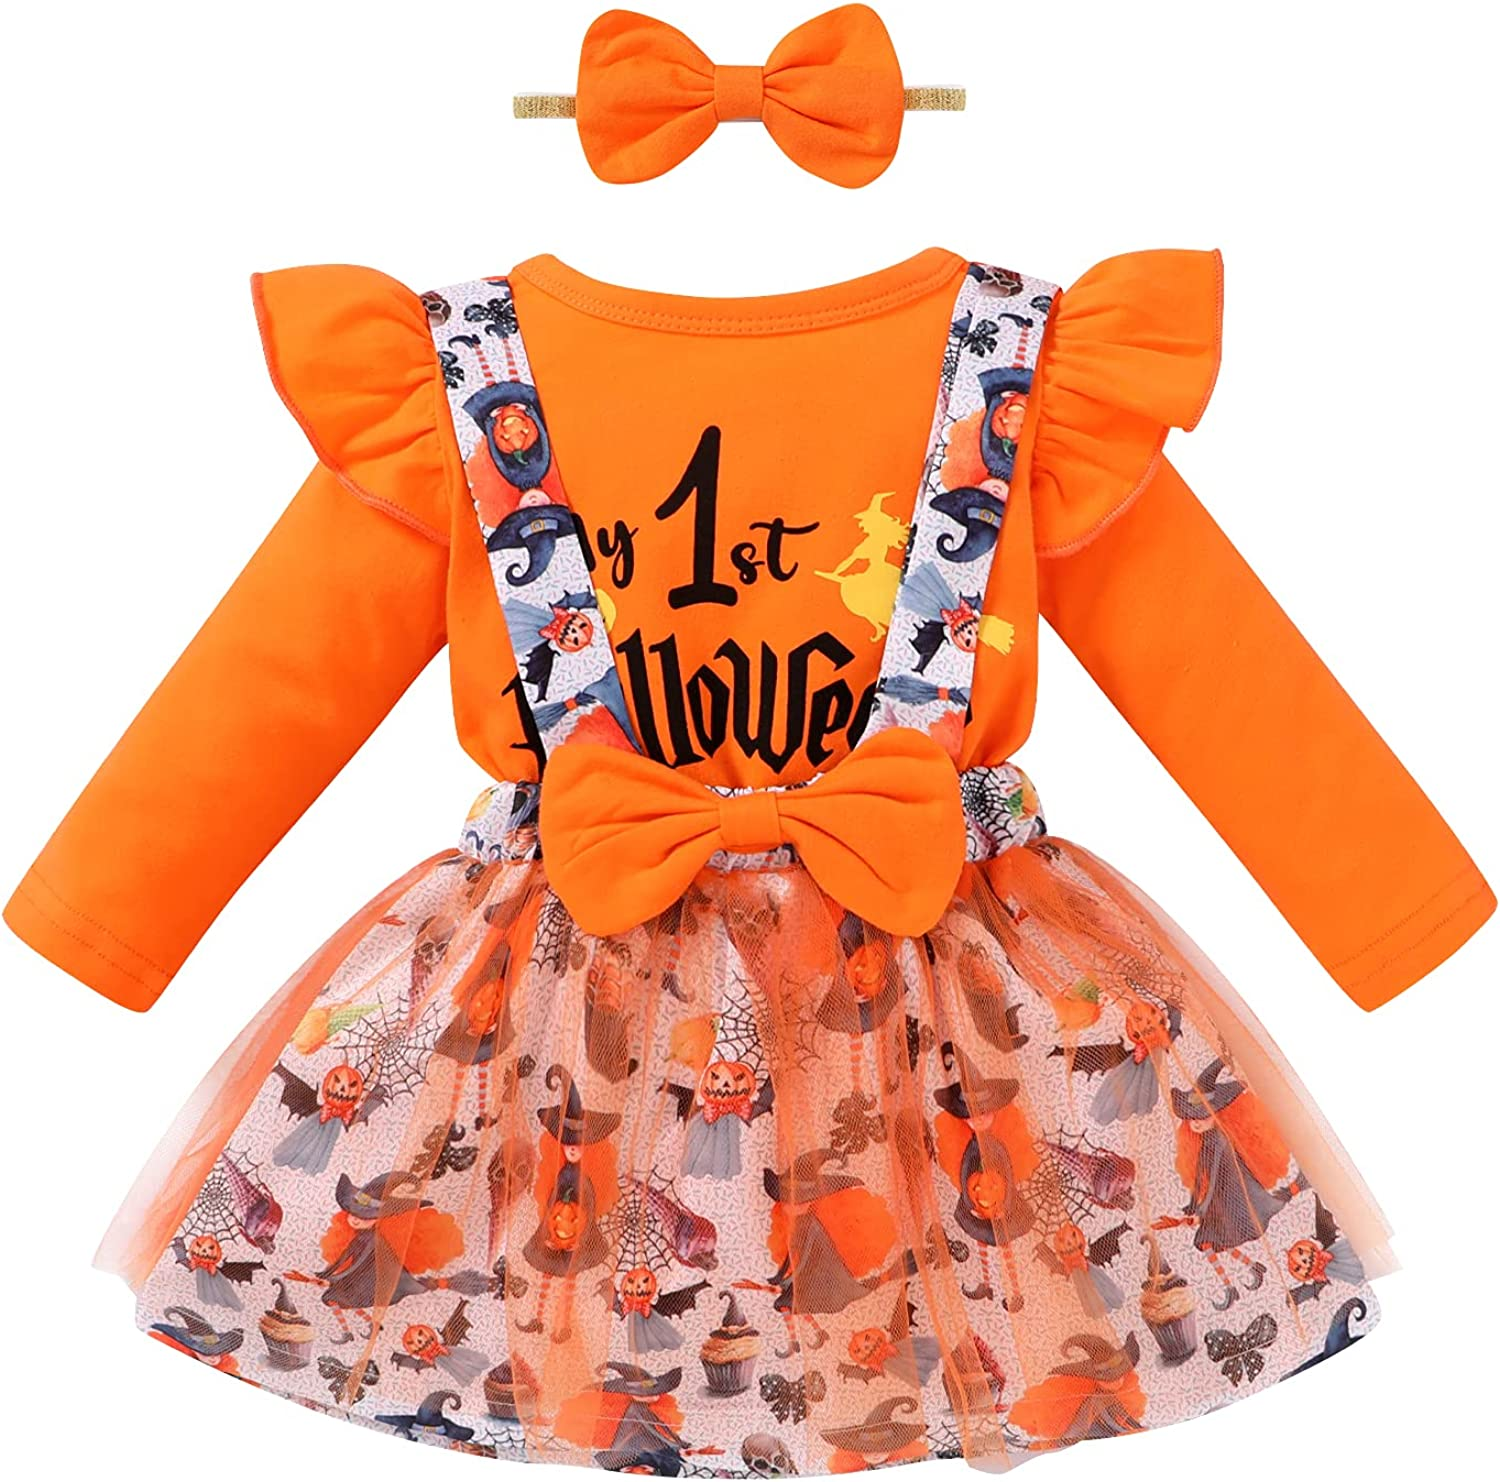 Halloween Newborn Infant Baby Girl Outfit My 1st Halloween Romper Top Bowknot Suspender Skirt Clothes Set with Headband